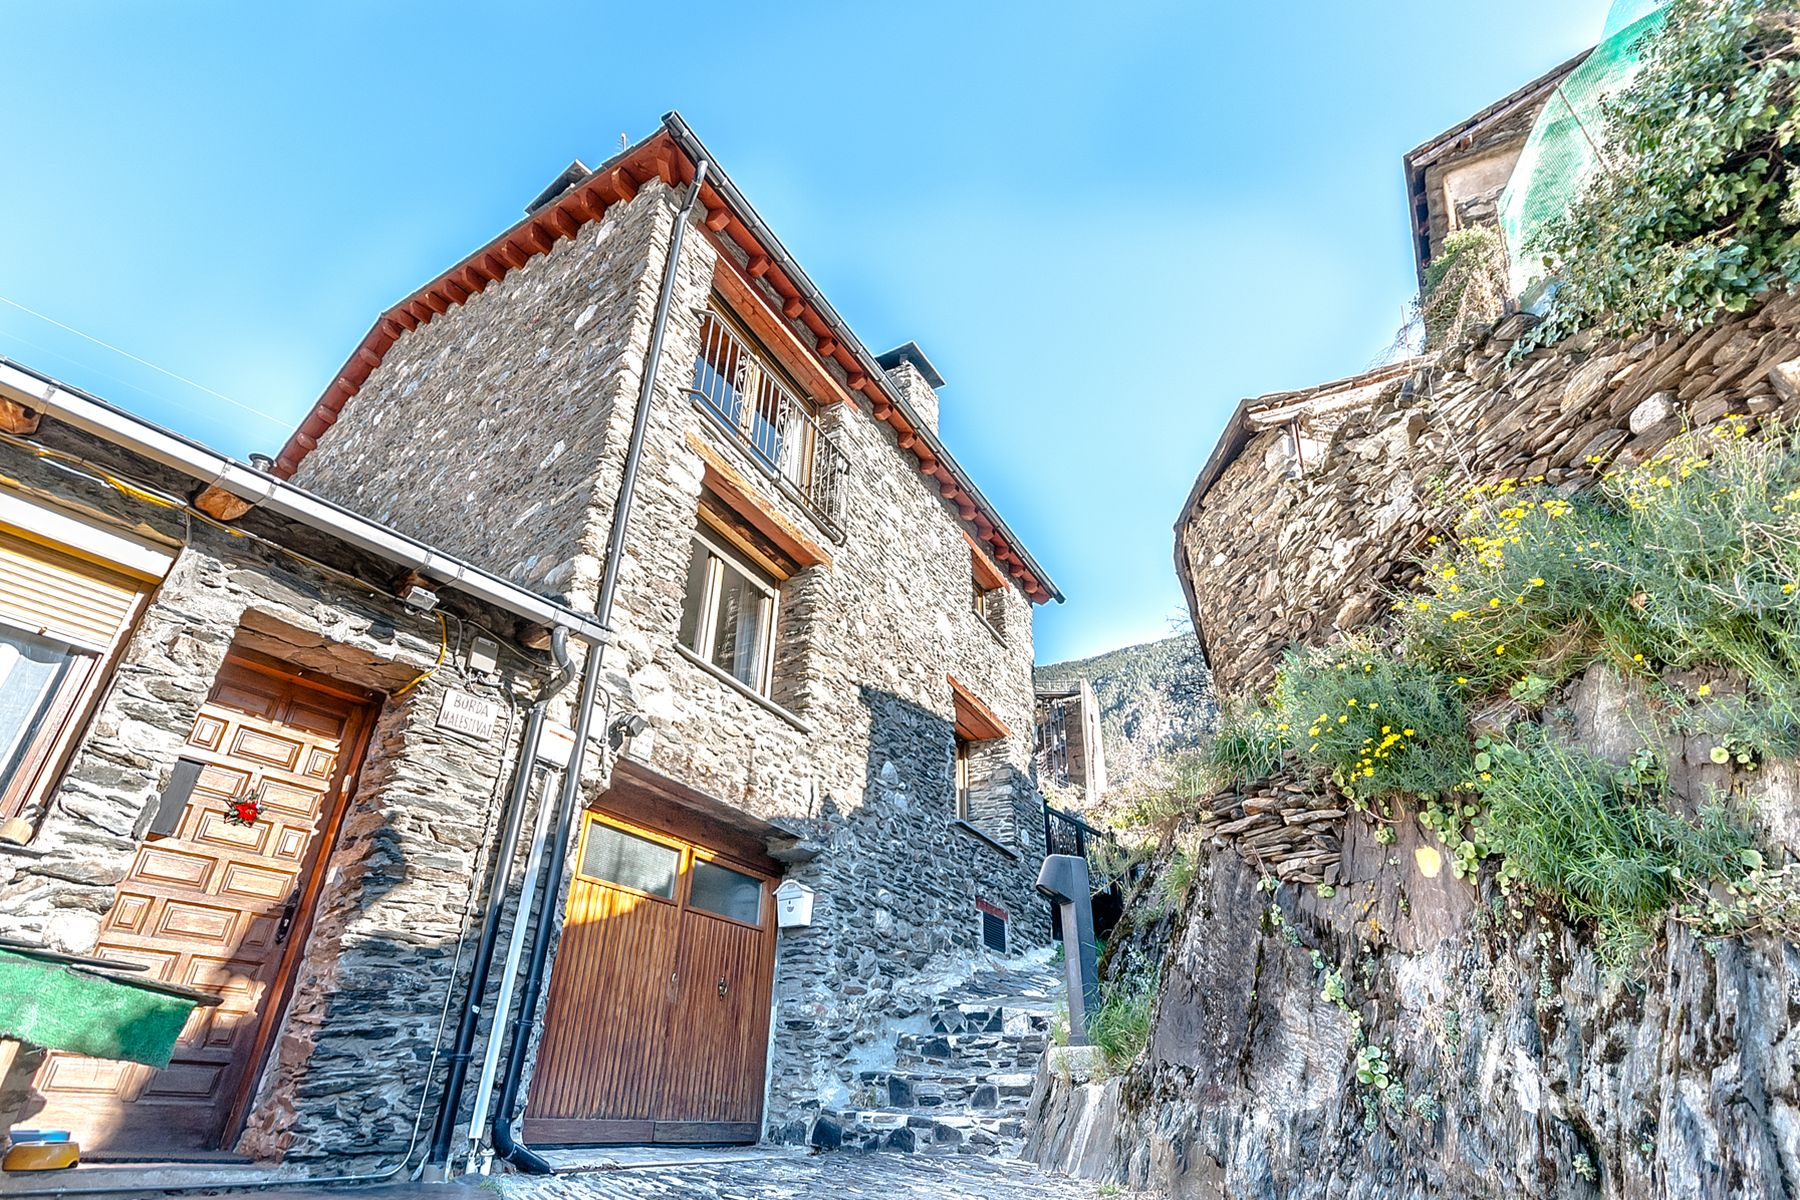 独户住宅 为 销售 在 Rustic house for sale in Les Bons Les Bons, 恩坎普, AD200 安道尔